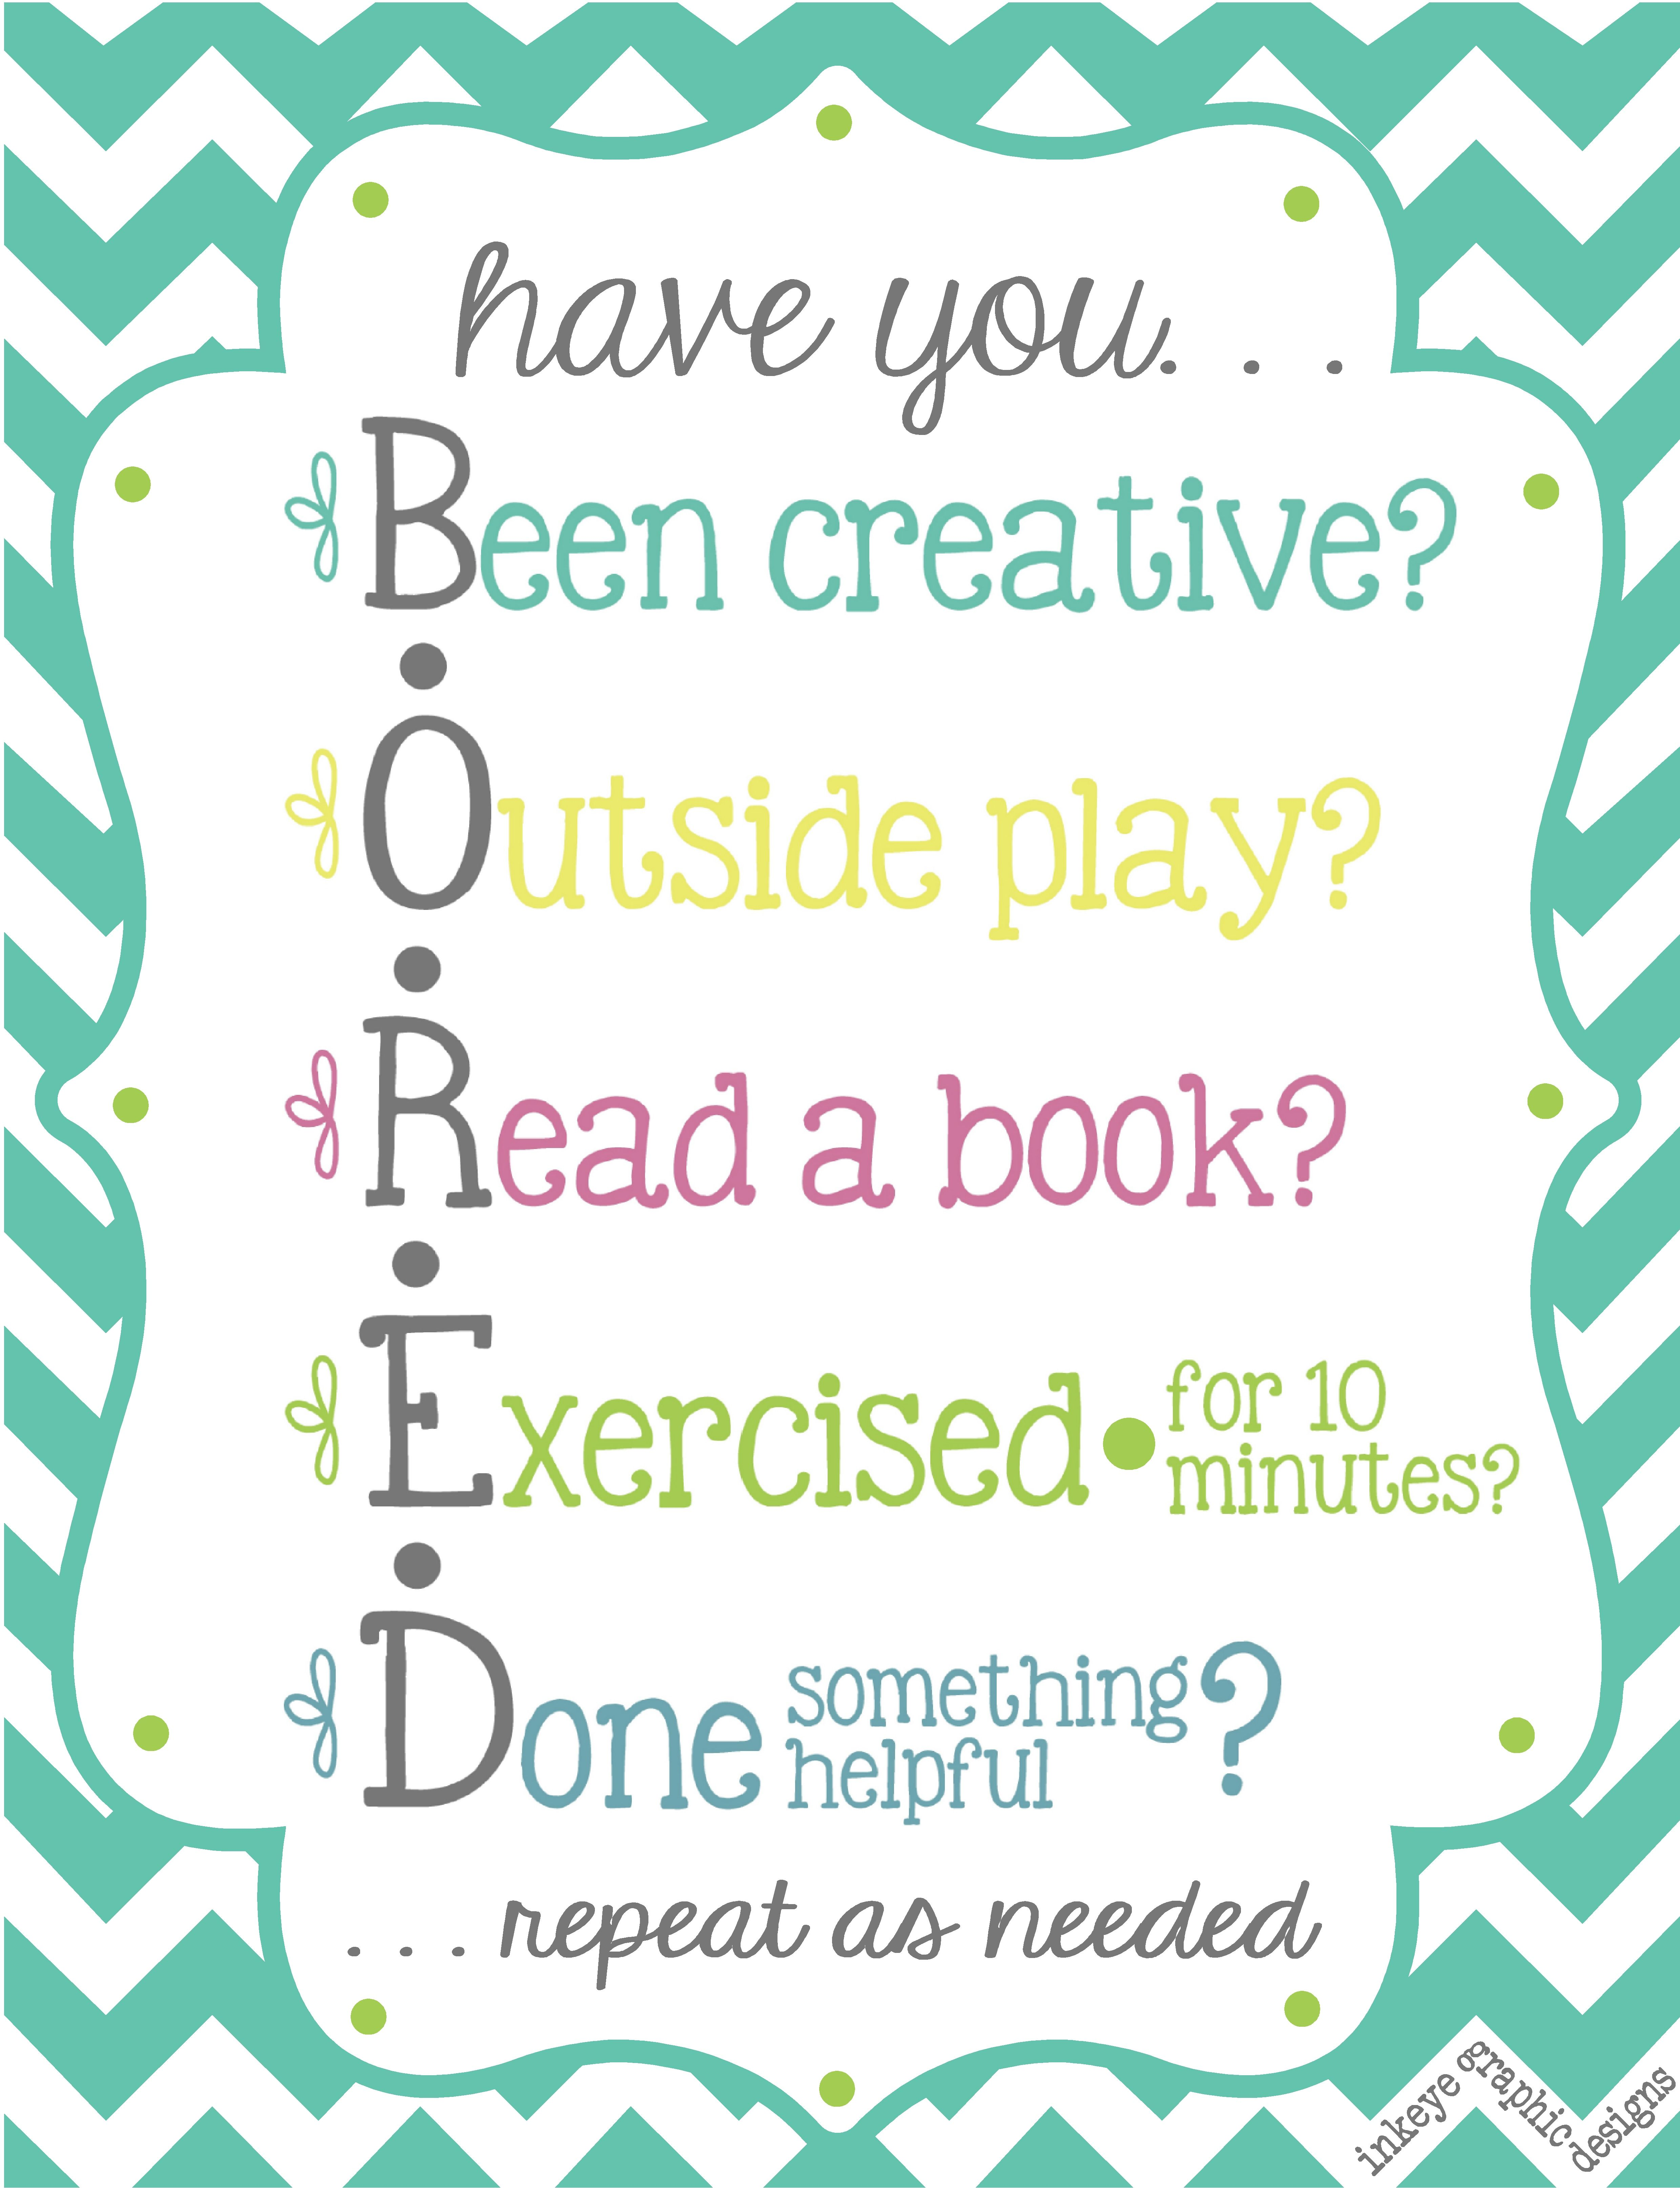 Are you bored?  Don't ask mom until you try these!  A cute poster / kid's chart crafted by Inkeye Graphic Designs (original source of wording unknown).  Prints on 8.5 x 11